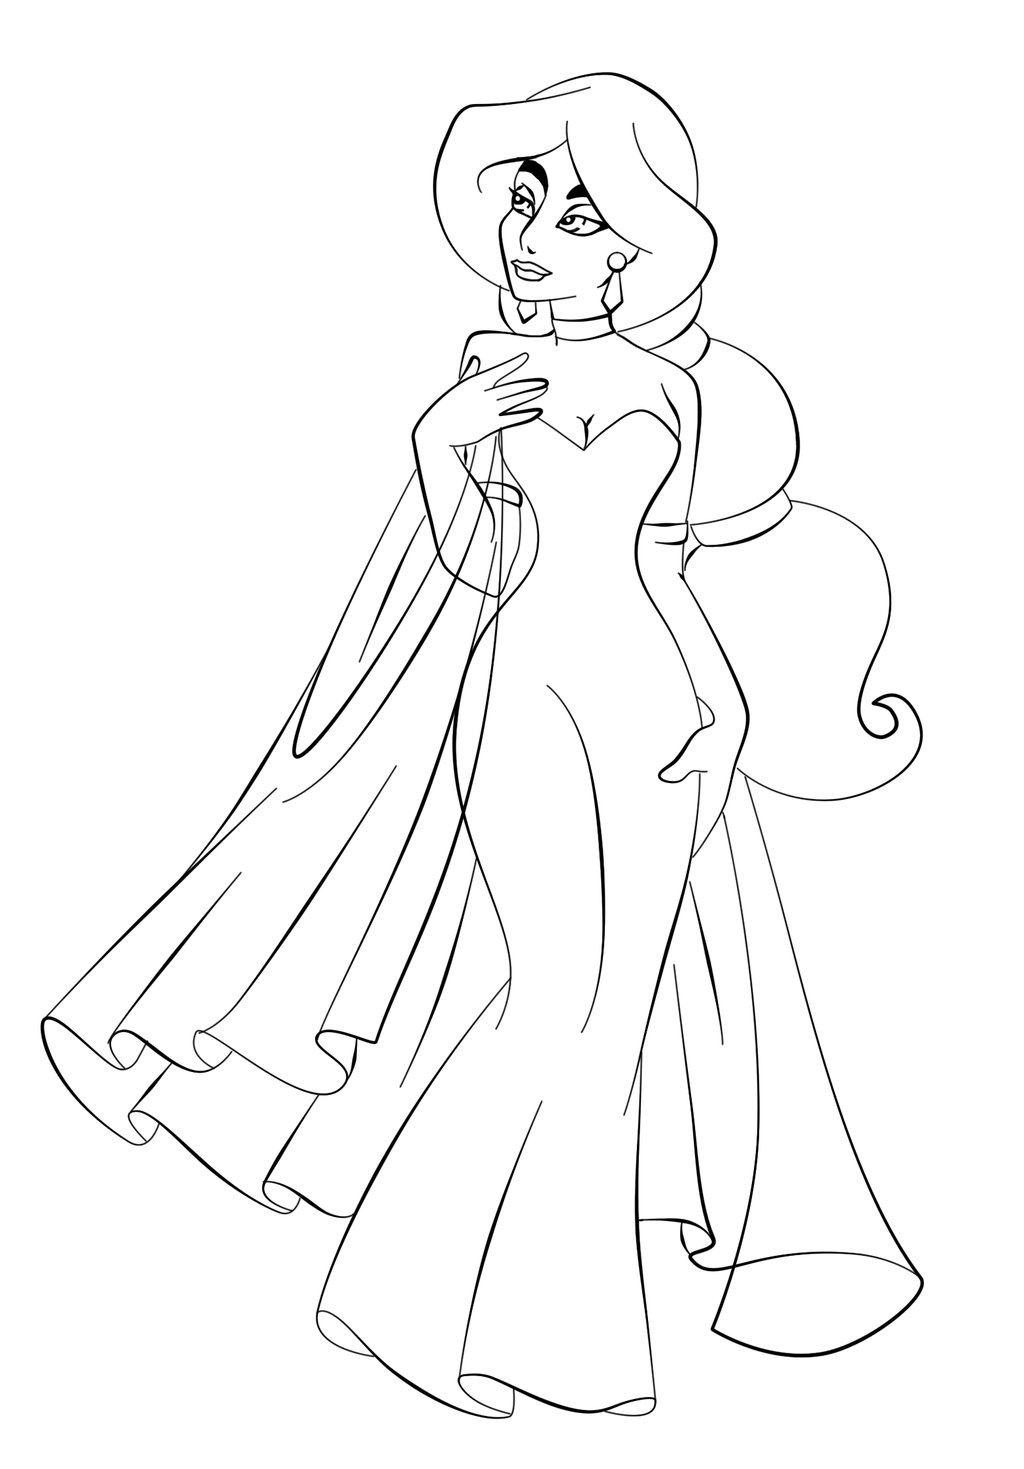 jazmin coloring pages - photo#15